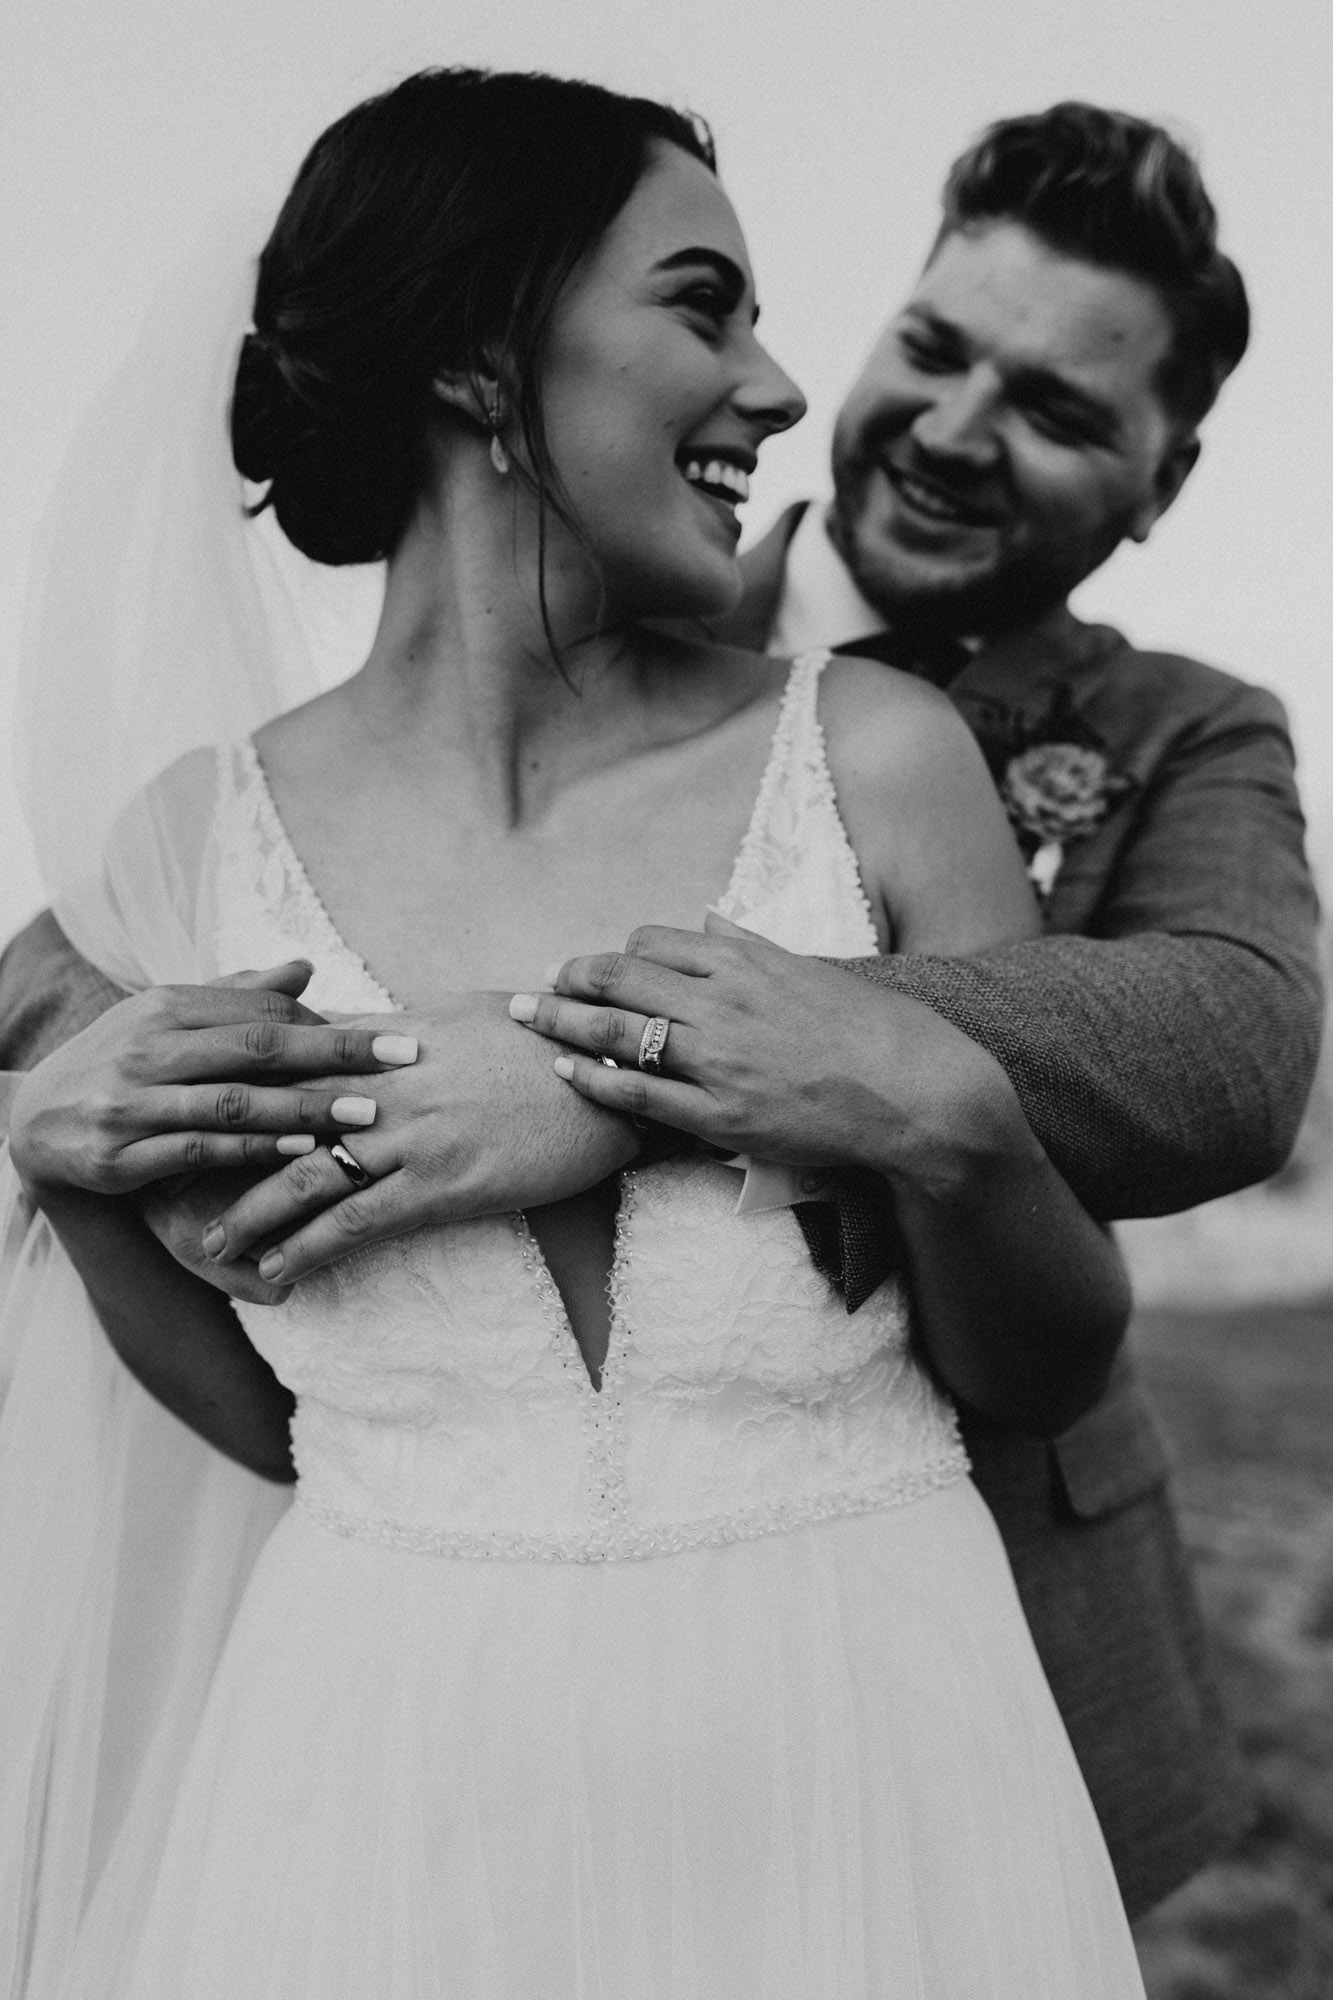 black and white photo of groom hugging bride from behind at their wedding ceremony